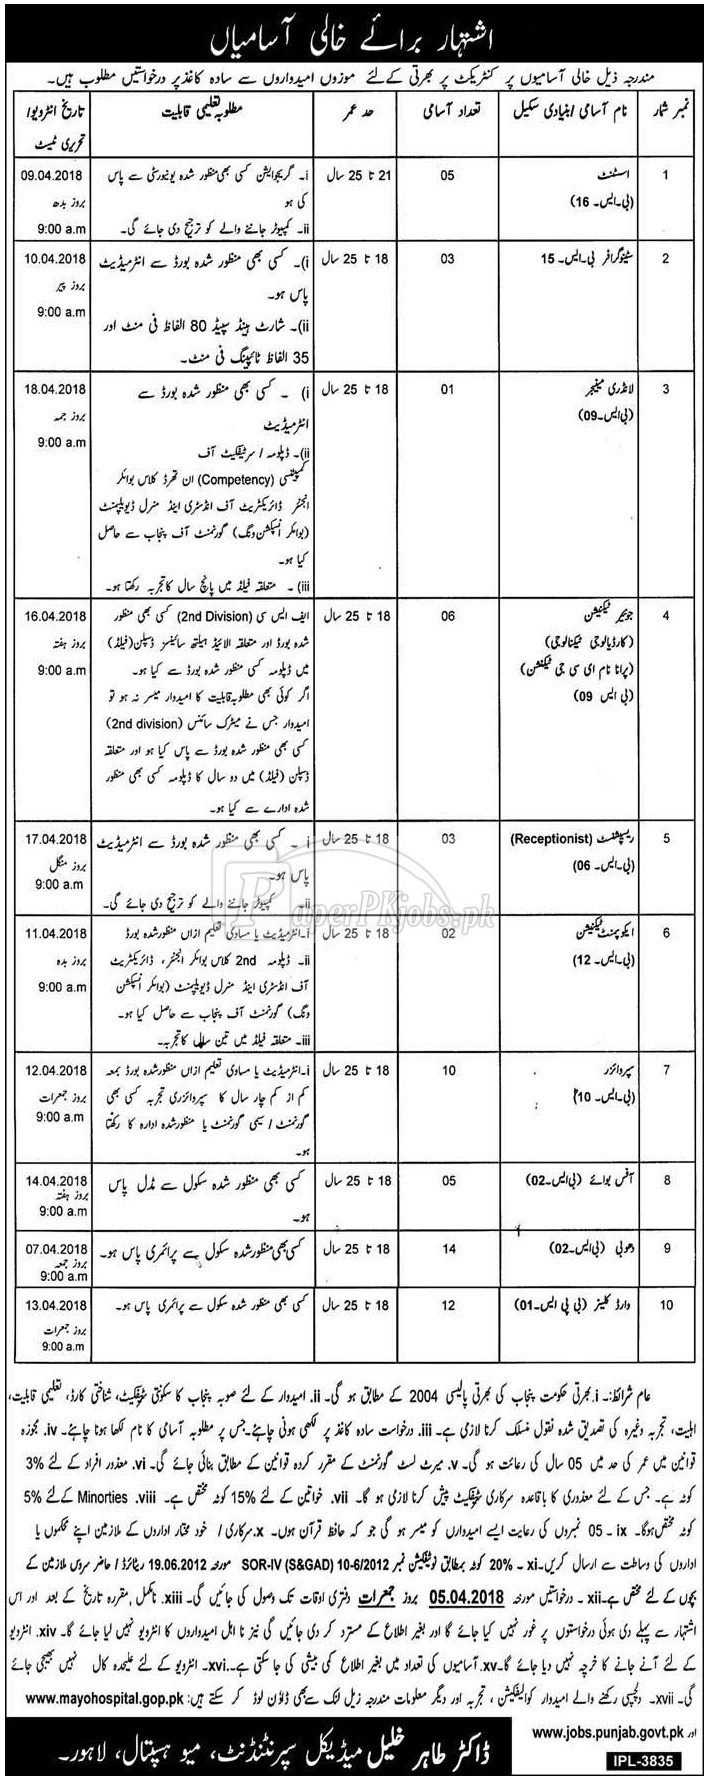 Mayo Hospital Lahore Jobs 2018